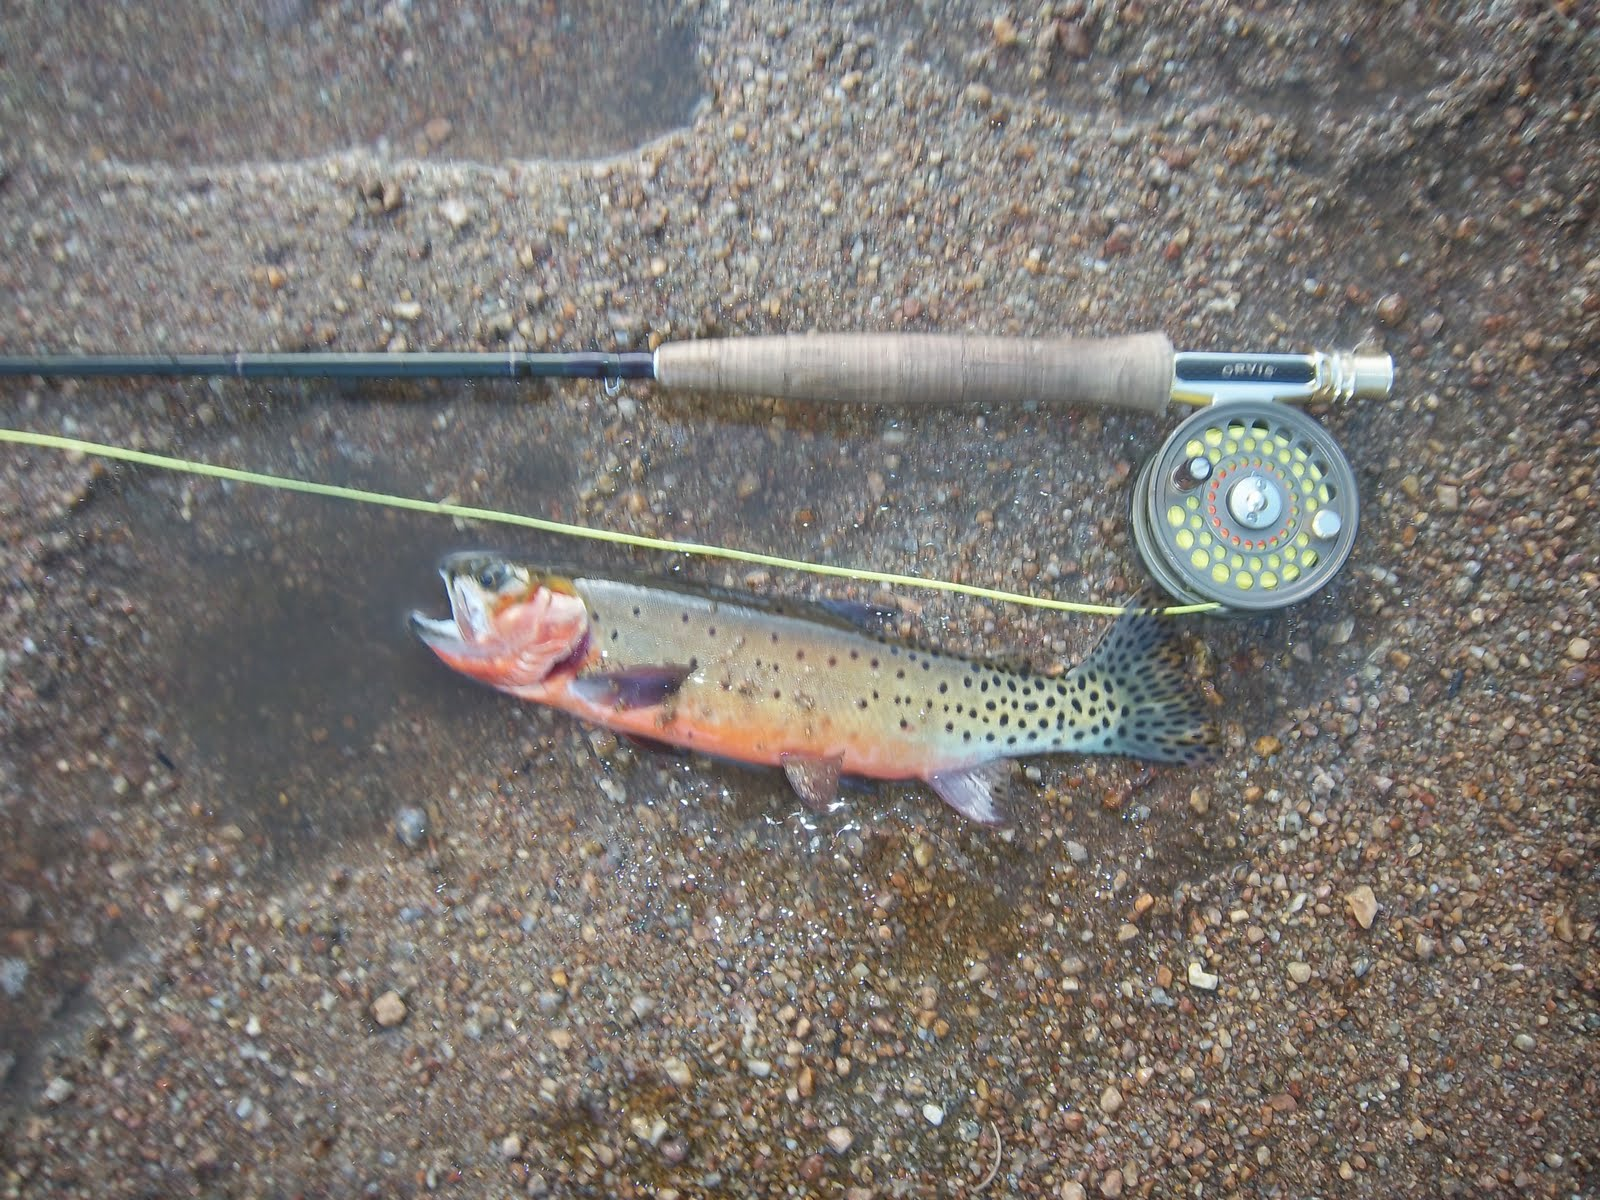 Grobe anglers and adventures lawn lake rocky mountain for Roaring river fishing hours